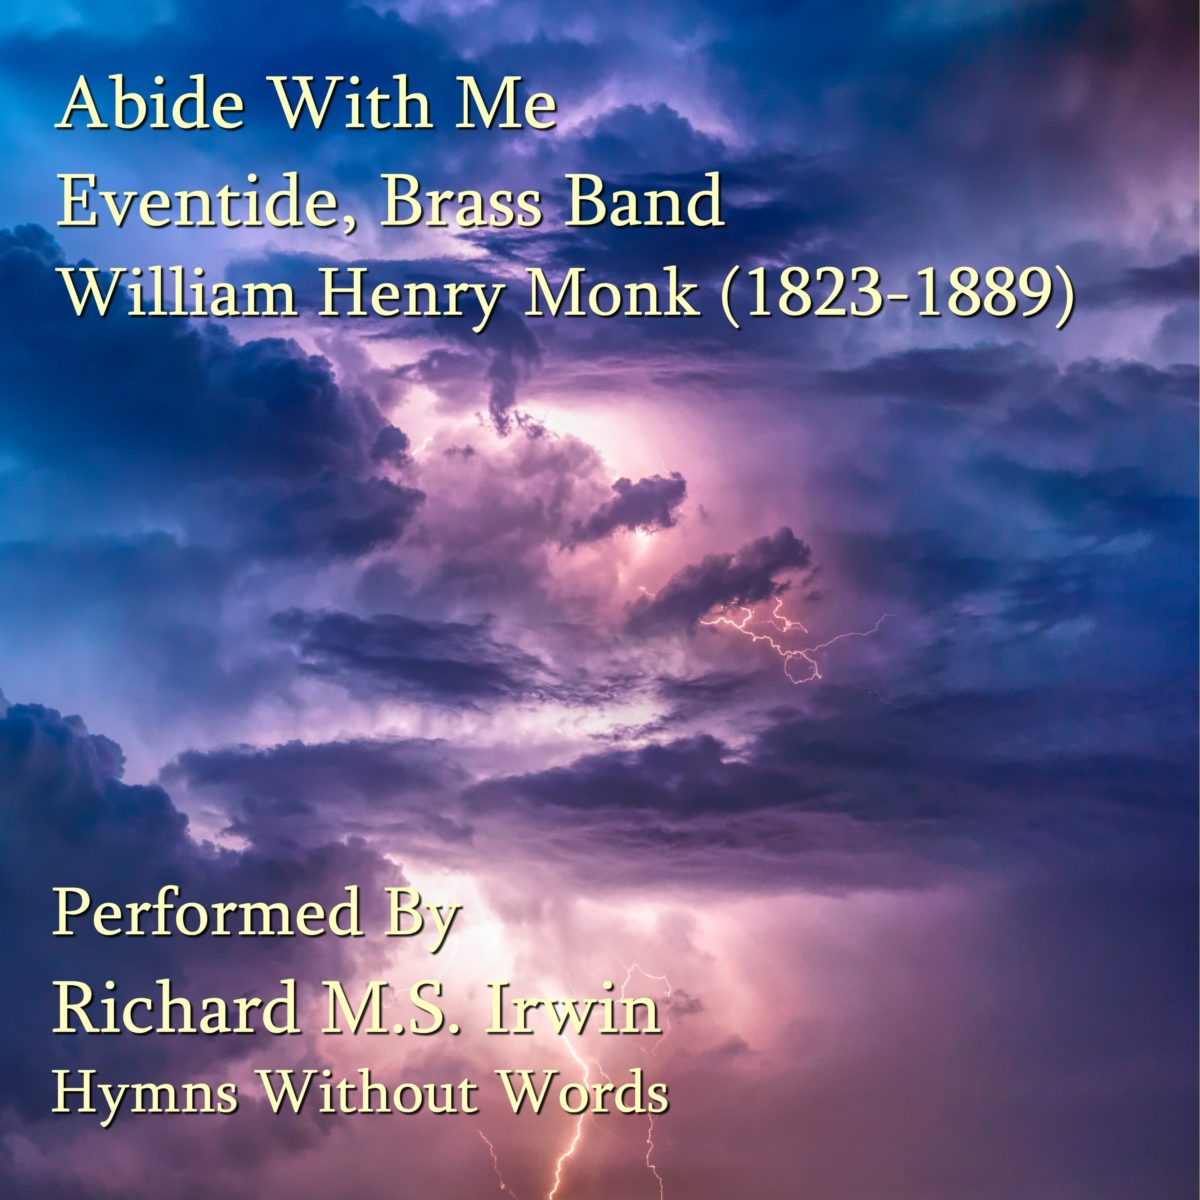 Abide With Me (Eventide, Brass Band, 5 Verses)